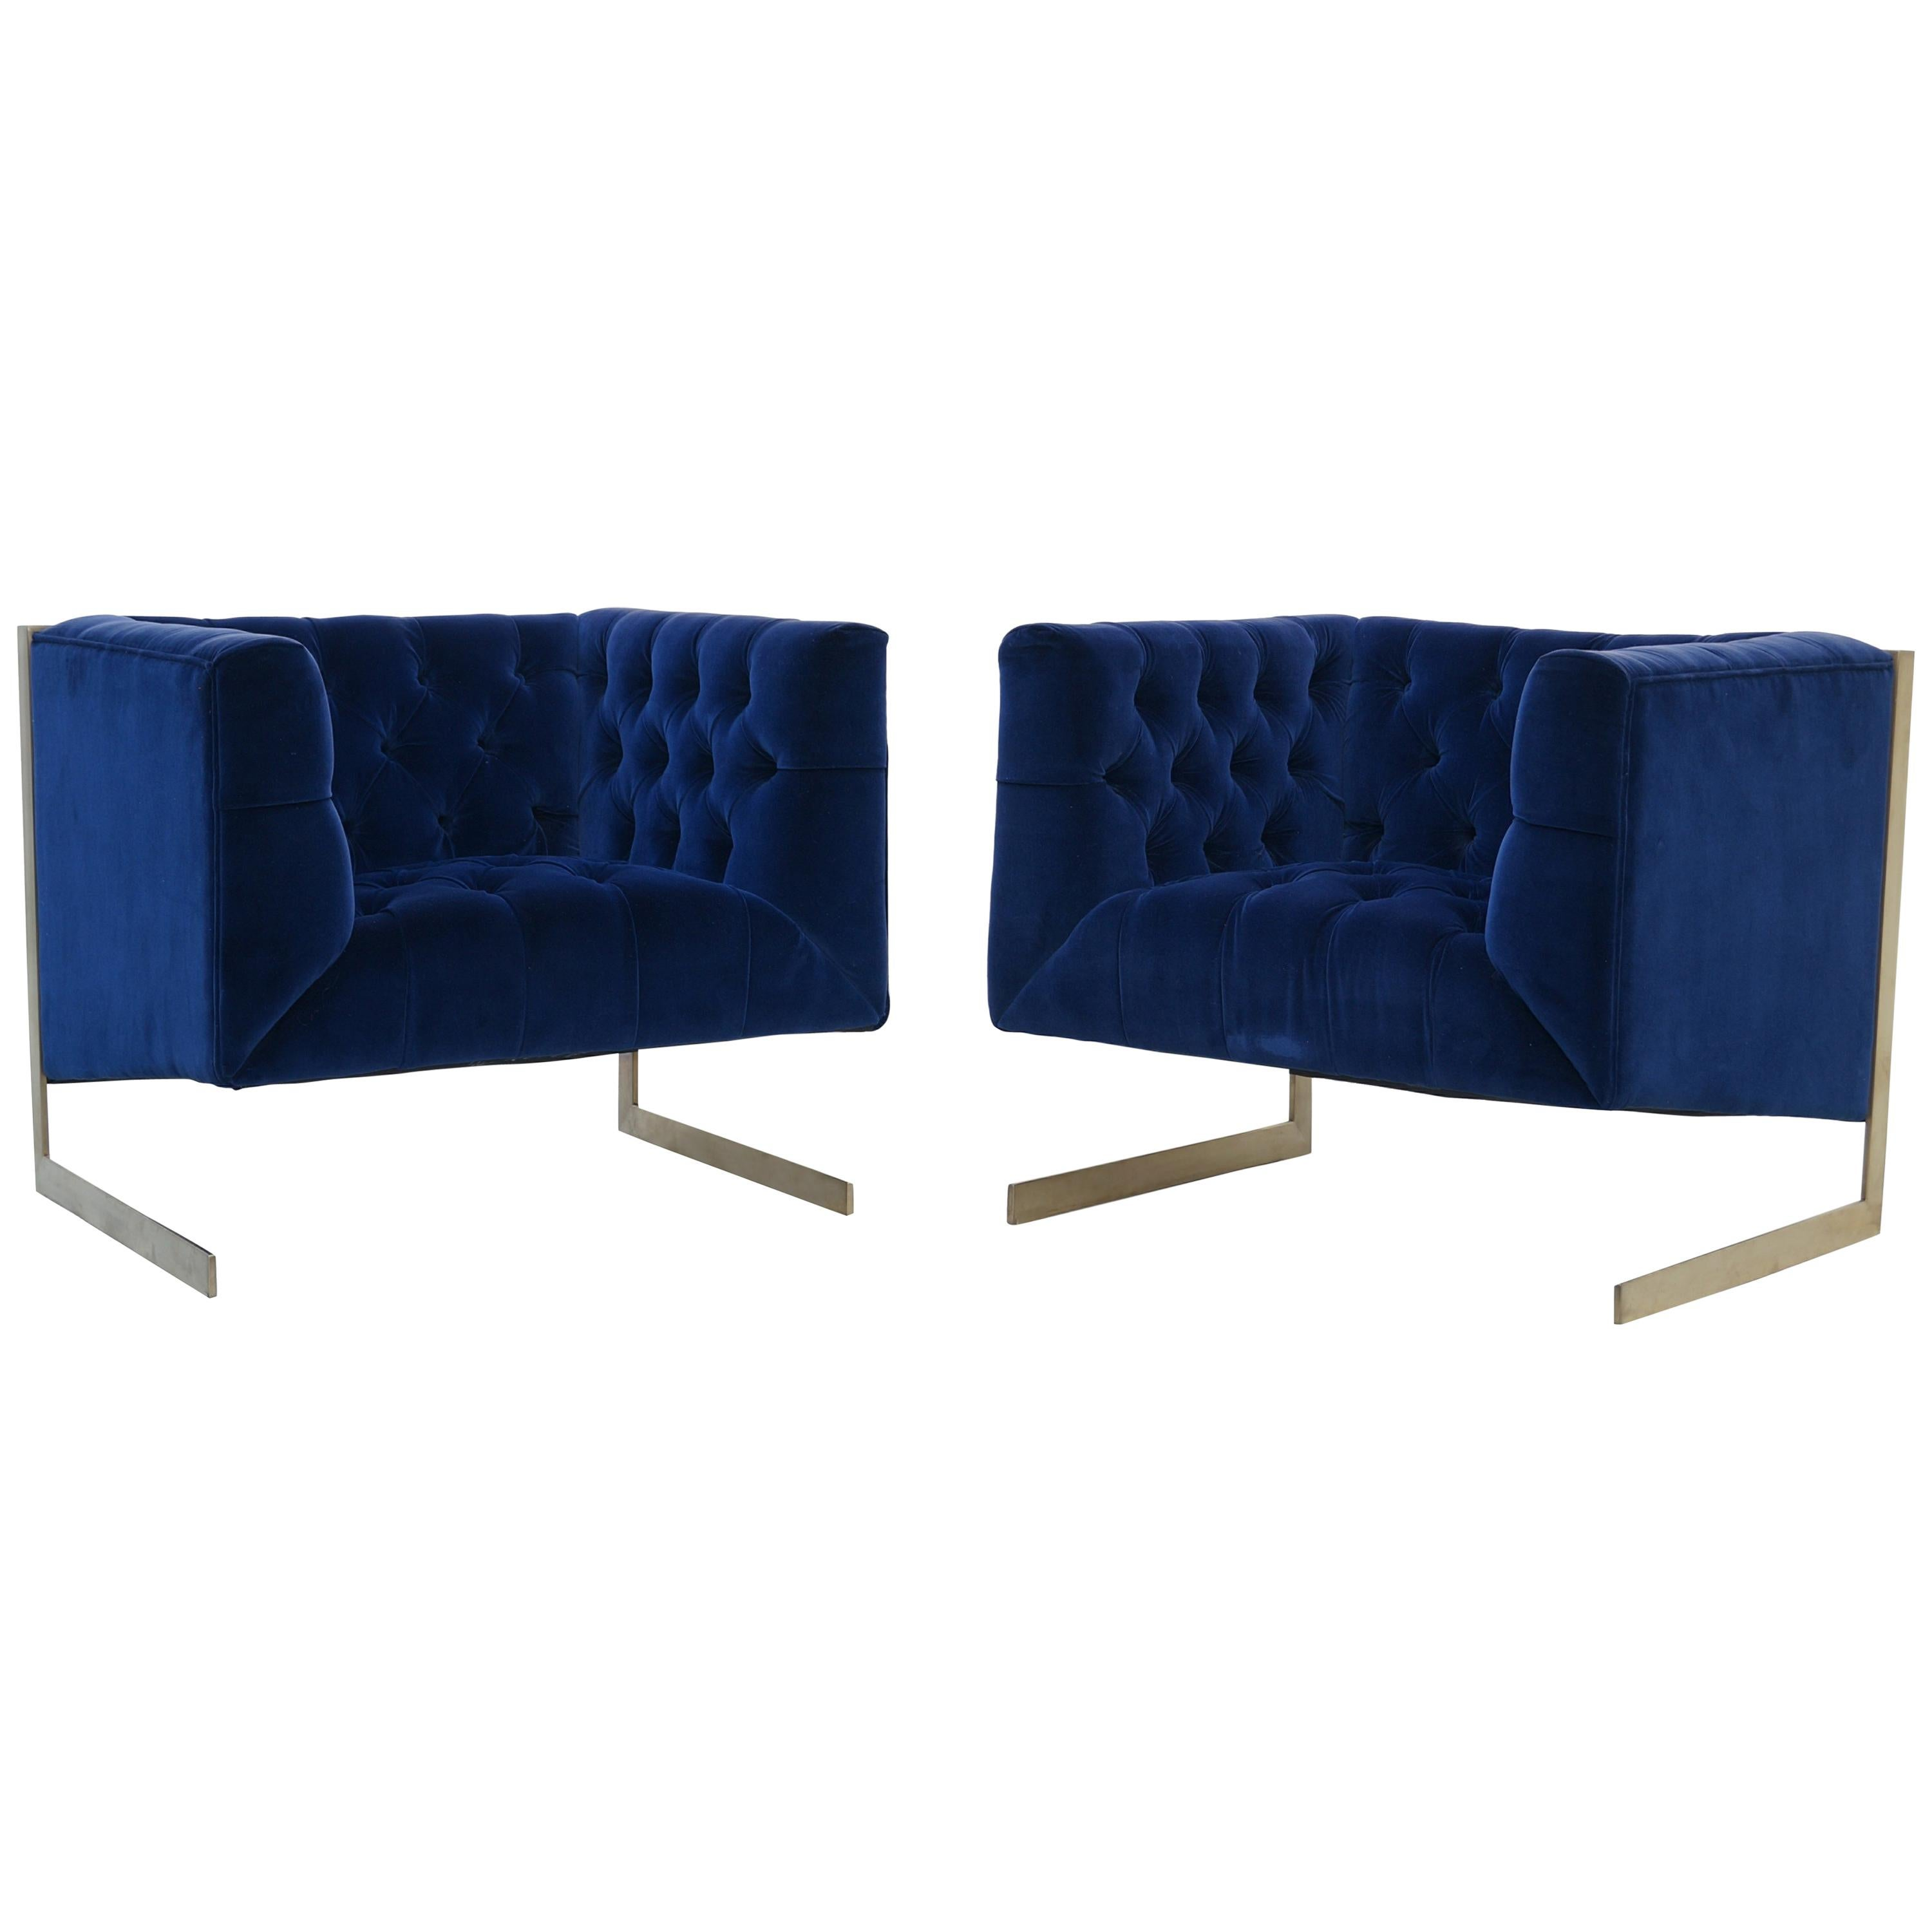 Pair Mid-Century Modern Milo Baughman Style Brass Cantilever Lounge Club Chairs